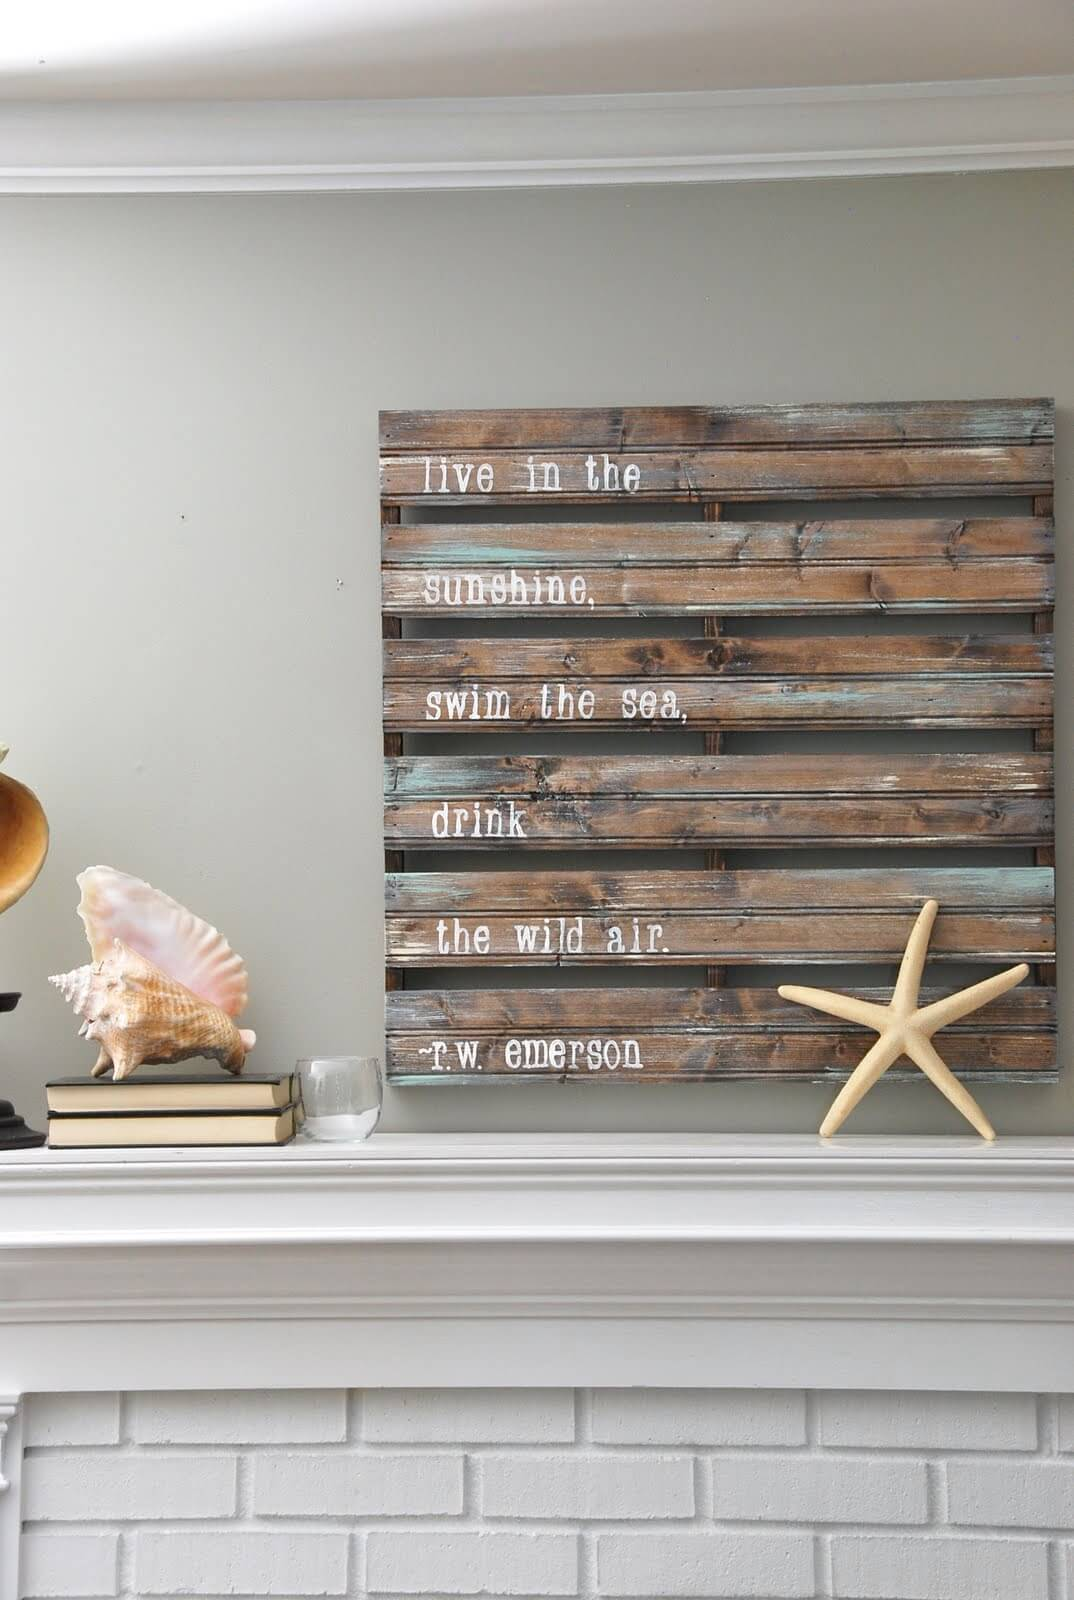 Stenciled Palette Sign with Inspirational Saying